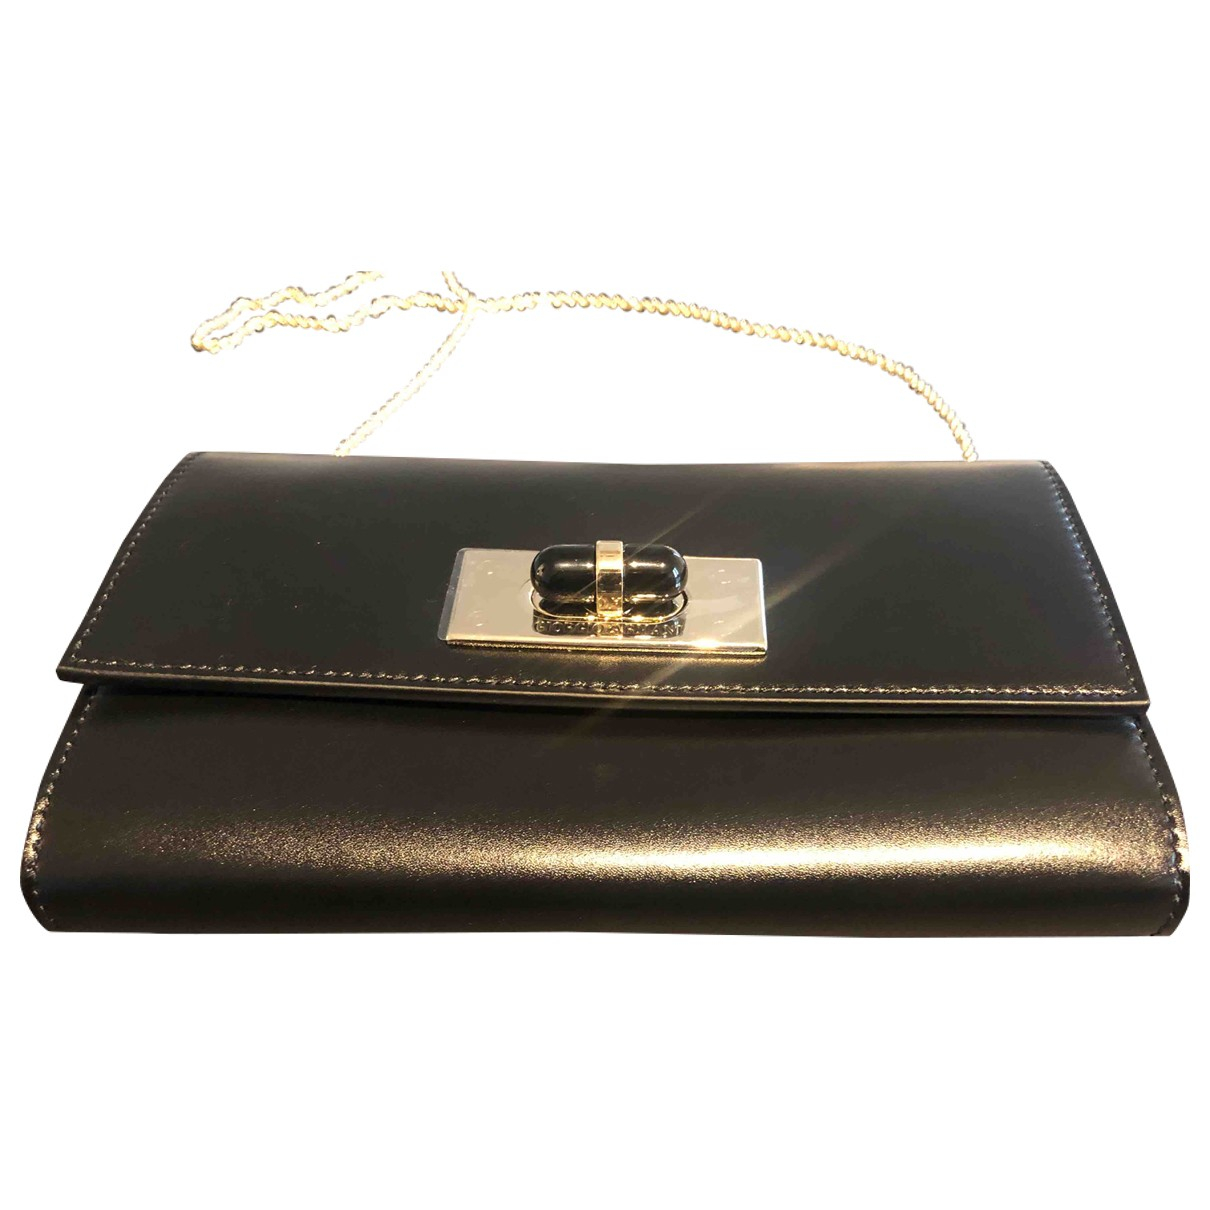 Giorgio Armani N Black Leather Clutch bag for Women N